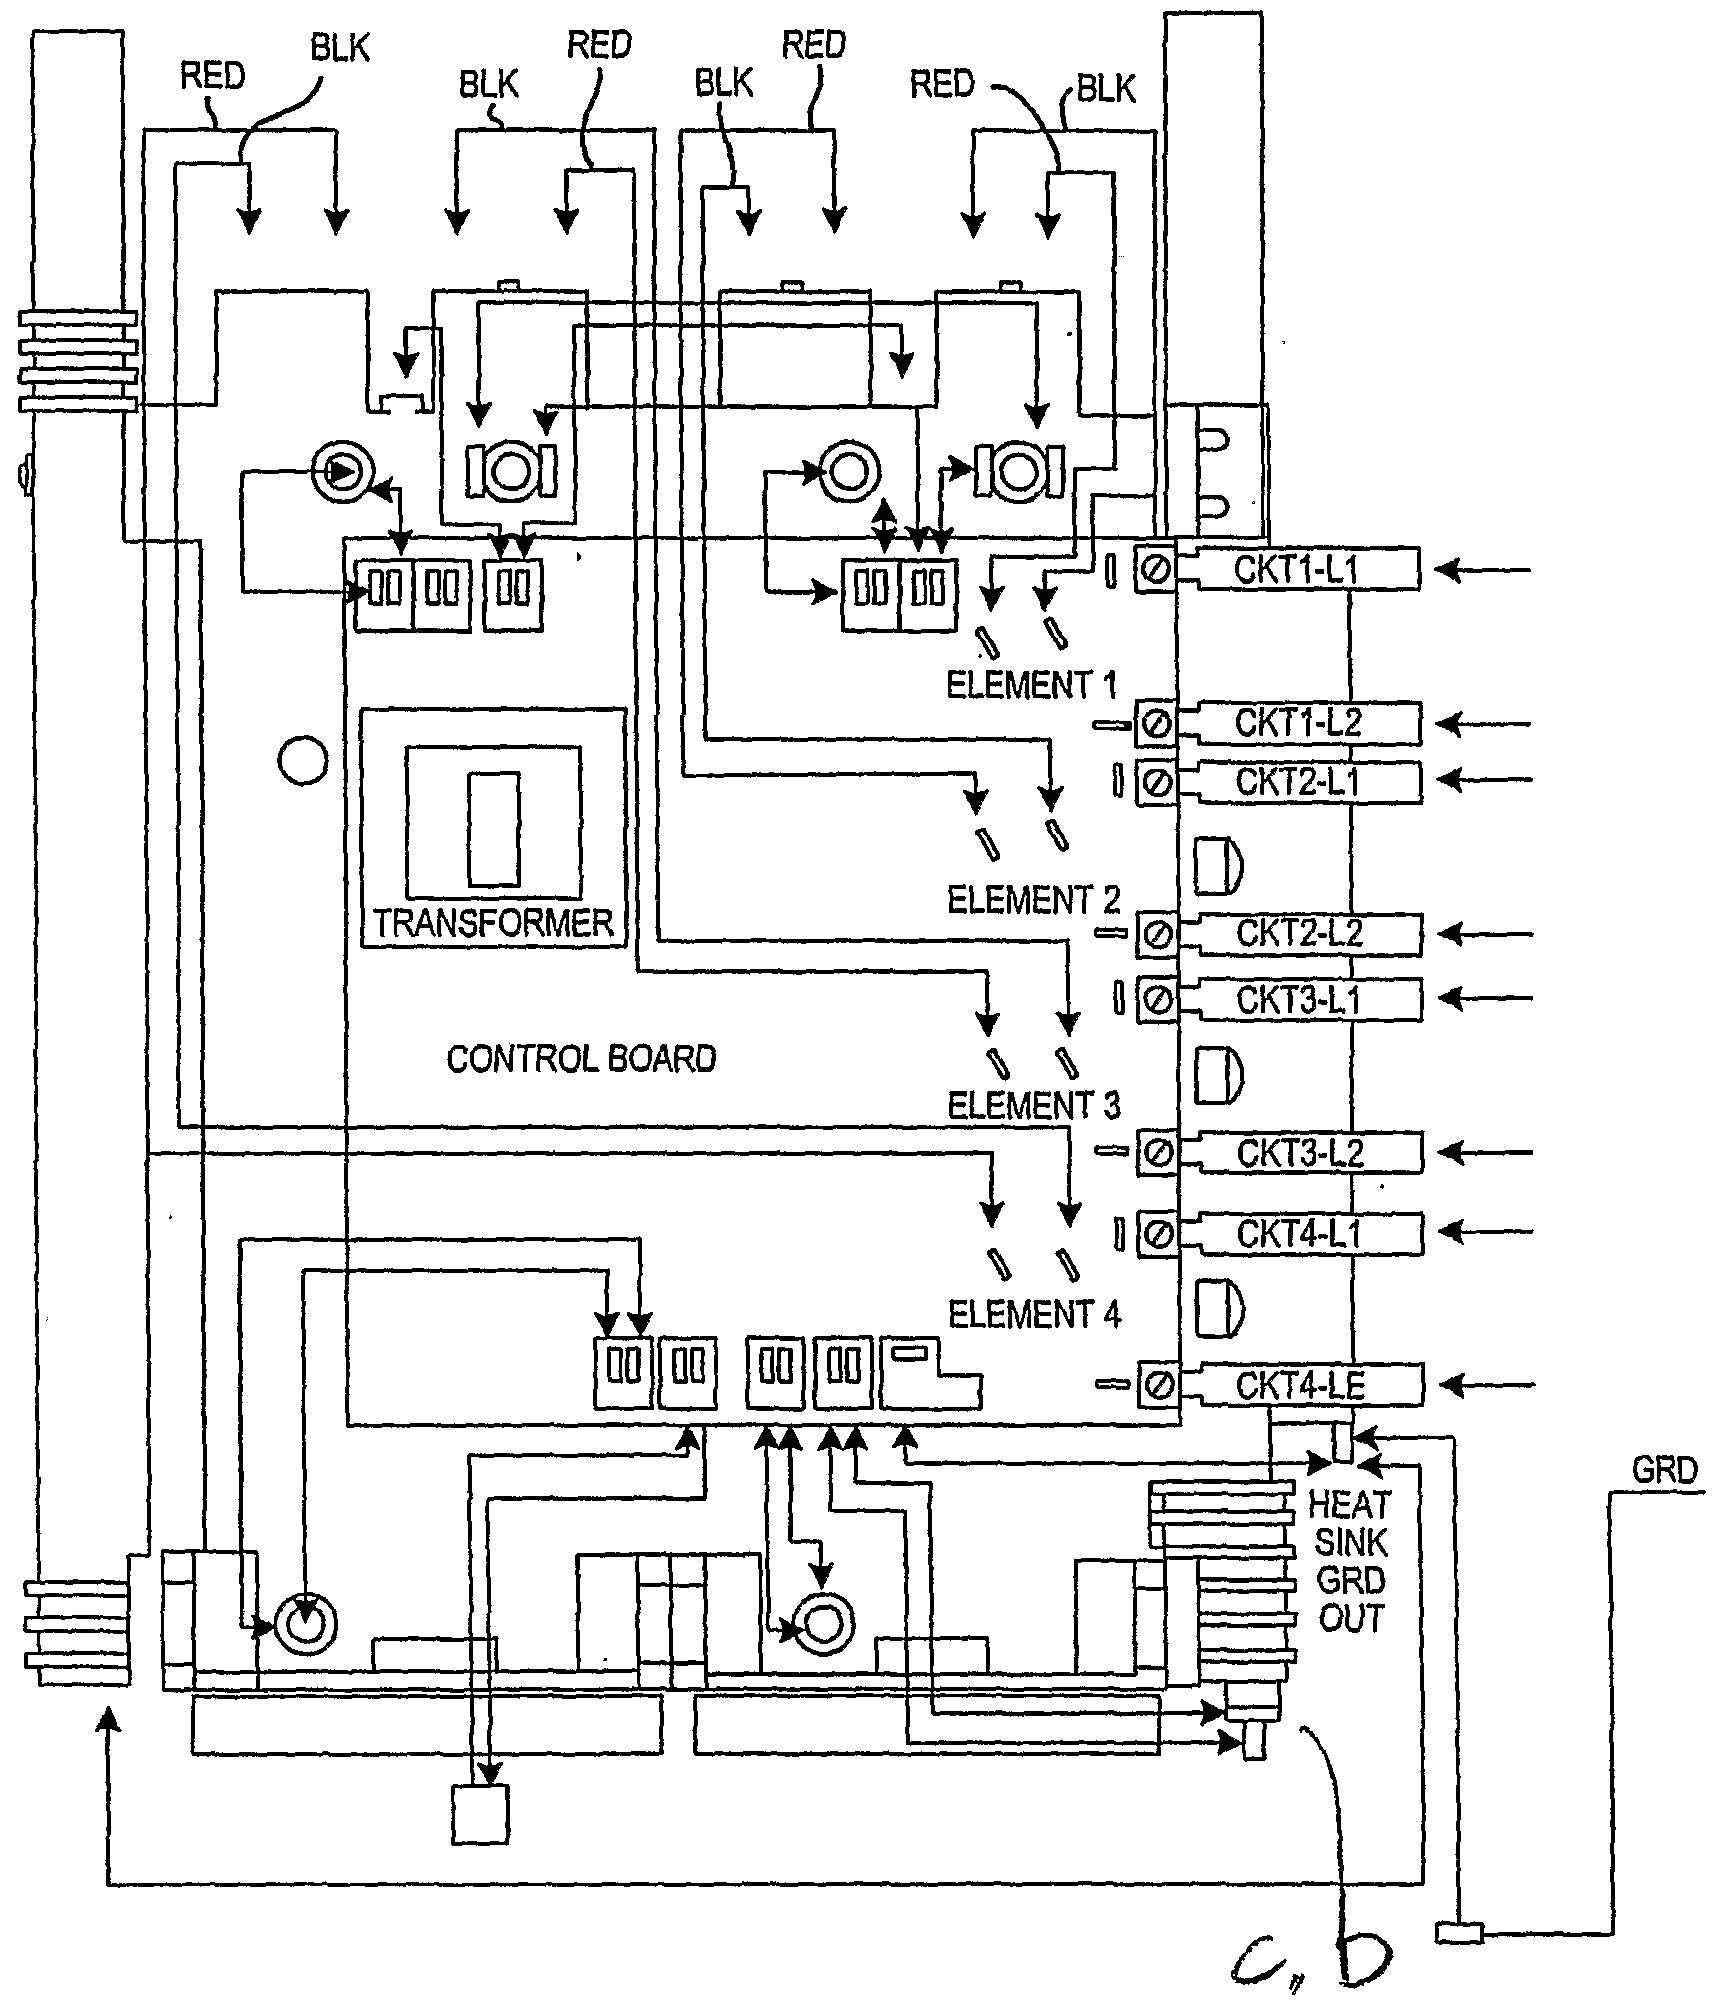 first company air handler wiring diagram first patent wo2006079116a2 solar panel and heat pump powered electric on first company air handler wiring diagram